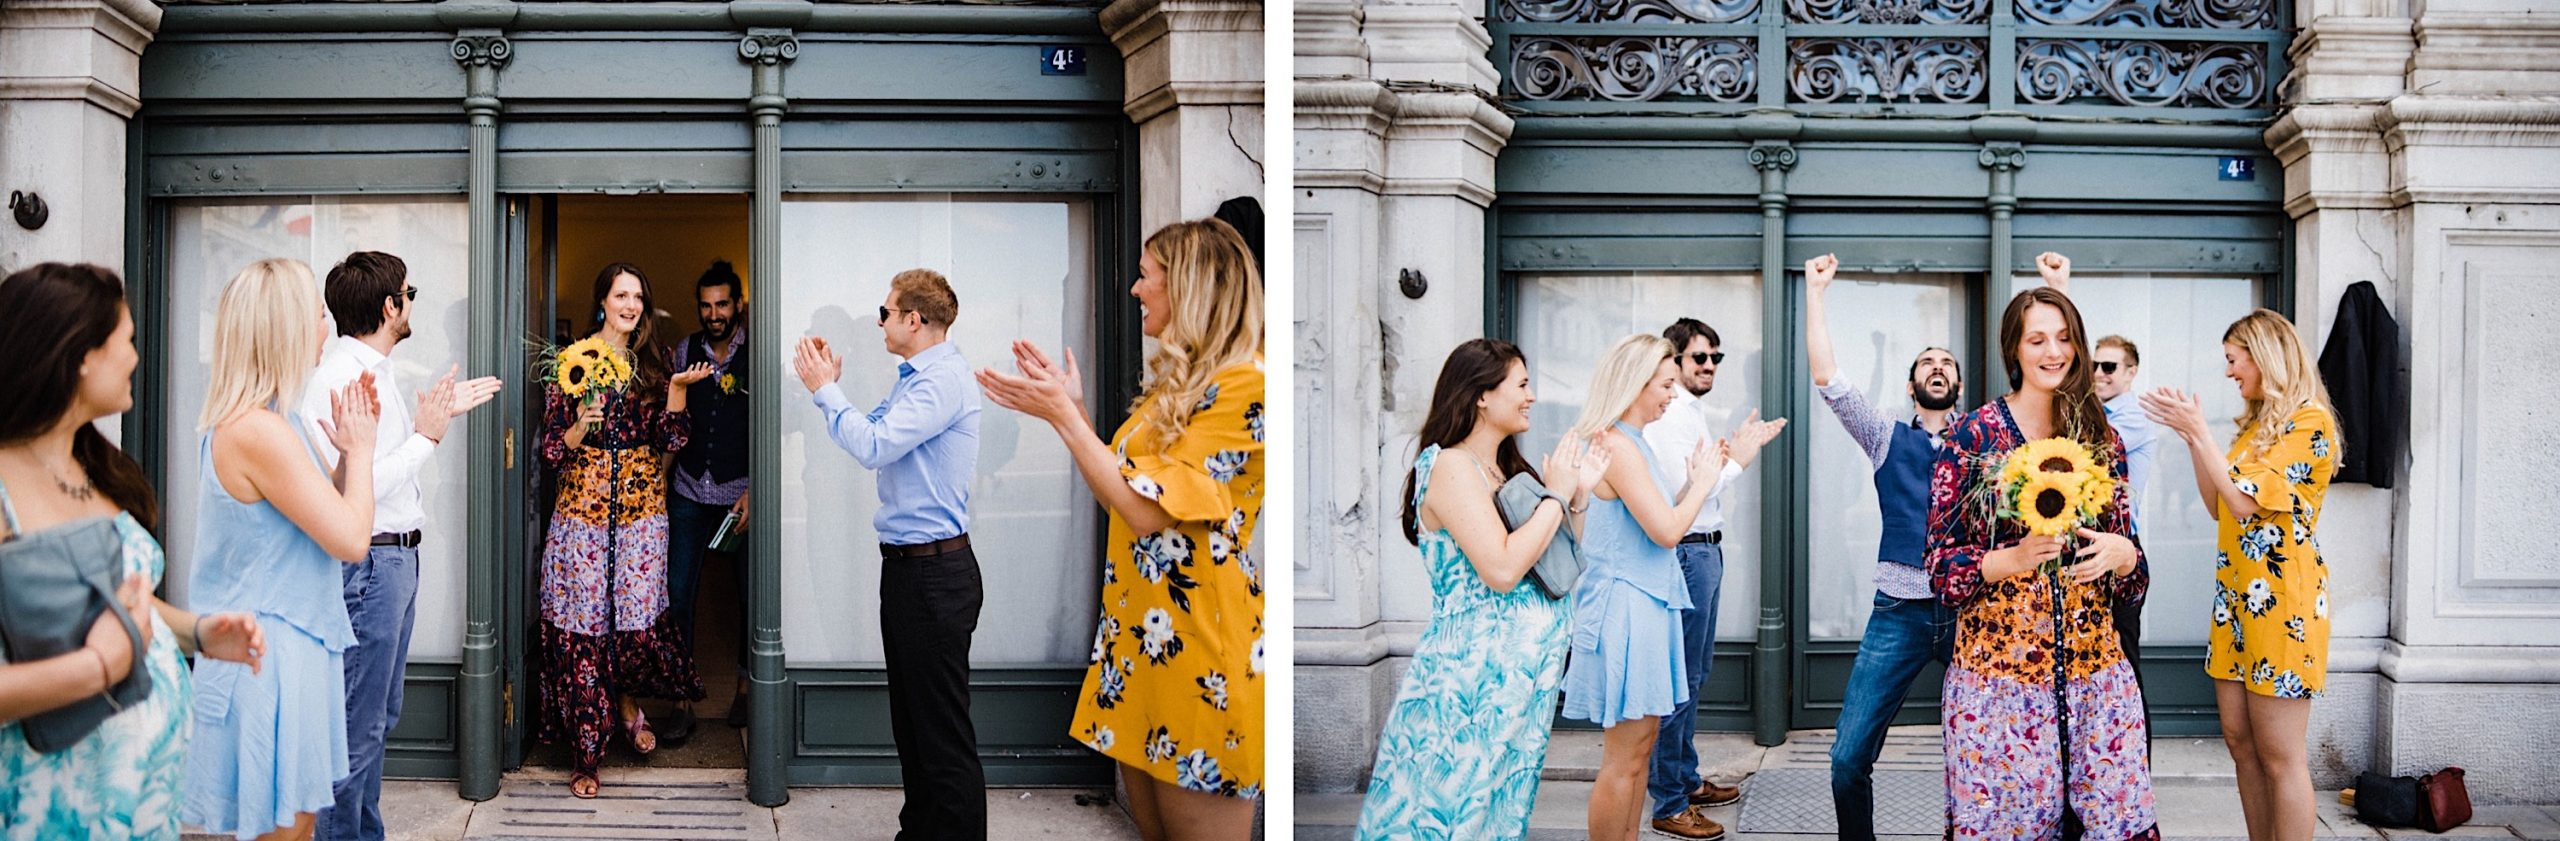 Two wedding photos of guests lined up outside the Trieste comune, clapping the newlyweds as they walk out of the comune.